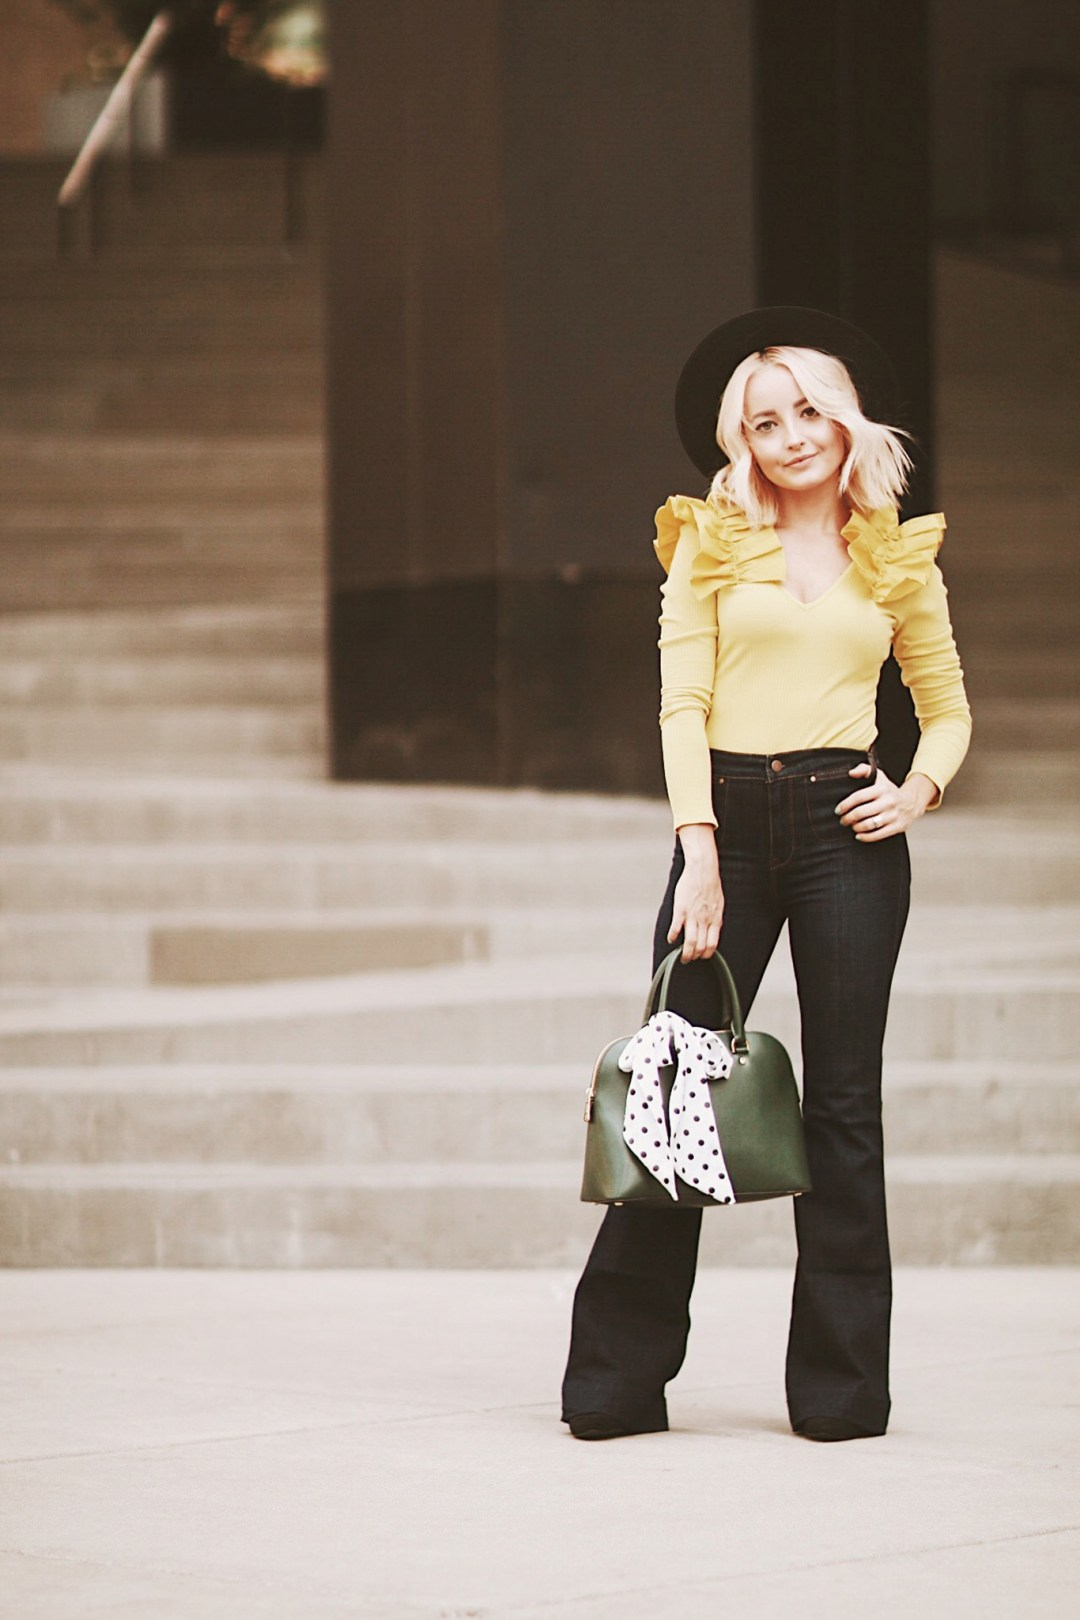 Alena Gidenko of modaprints.com shoes tips on styling flare jeans this Fall